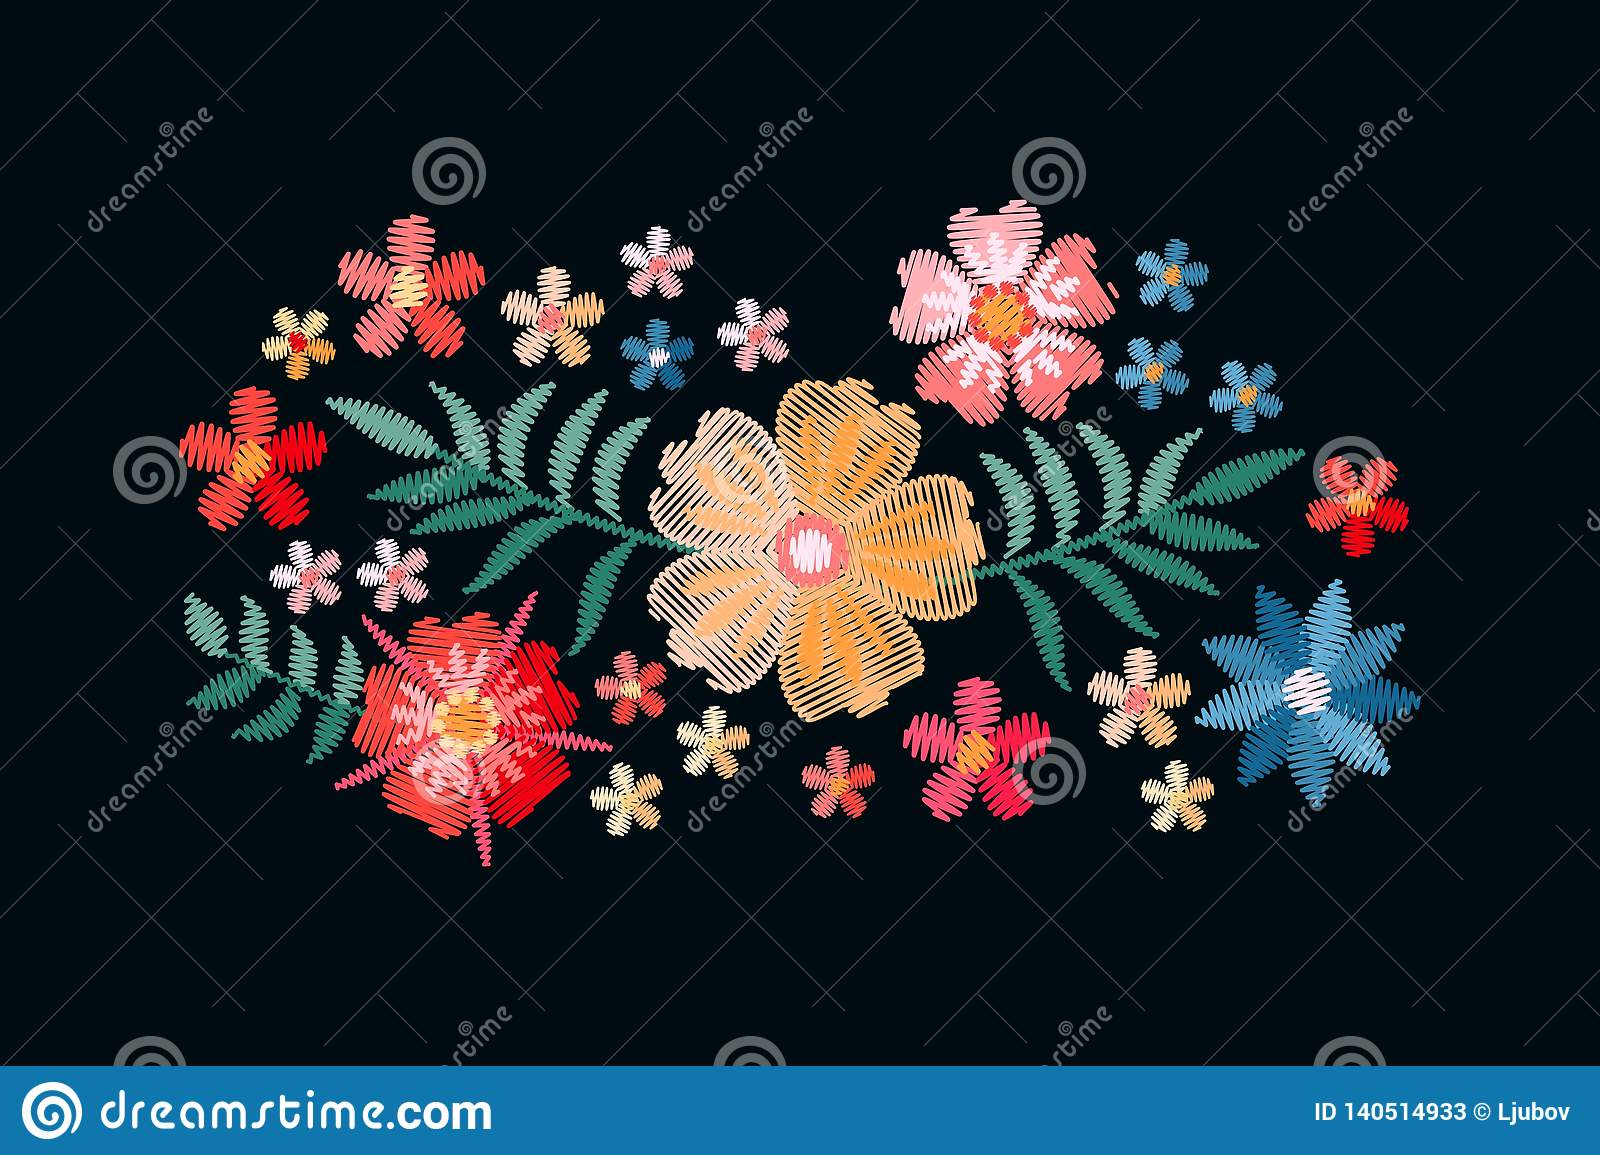 Embroidery Design With Beautiful Flowers And Leaves Colorful Bouquet Isolated On Black Background Satin Stitch In Vector Stock Vector Illustration Of Bouquet Flower 140514933